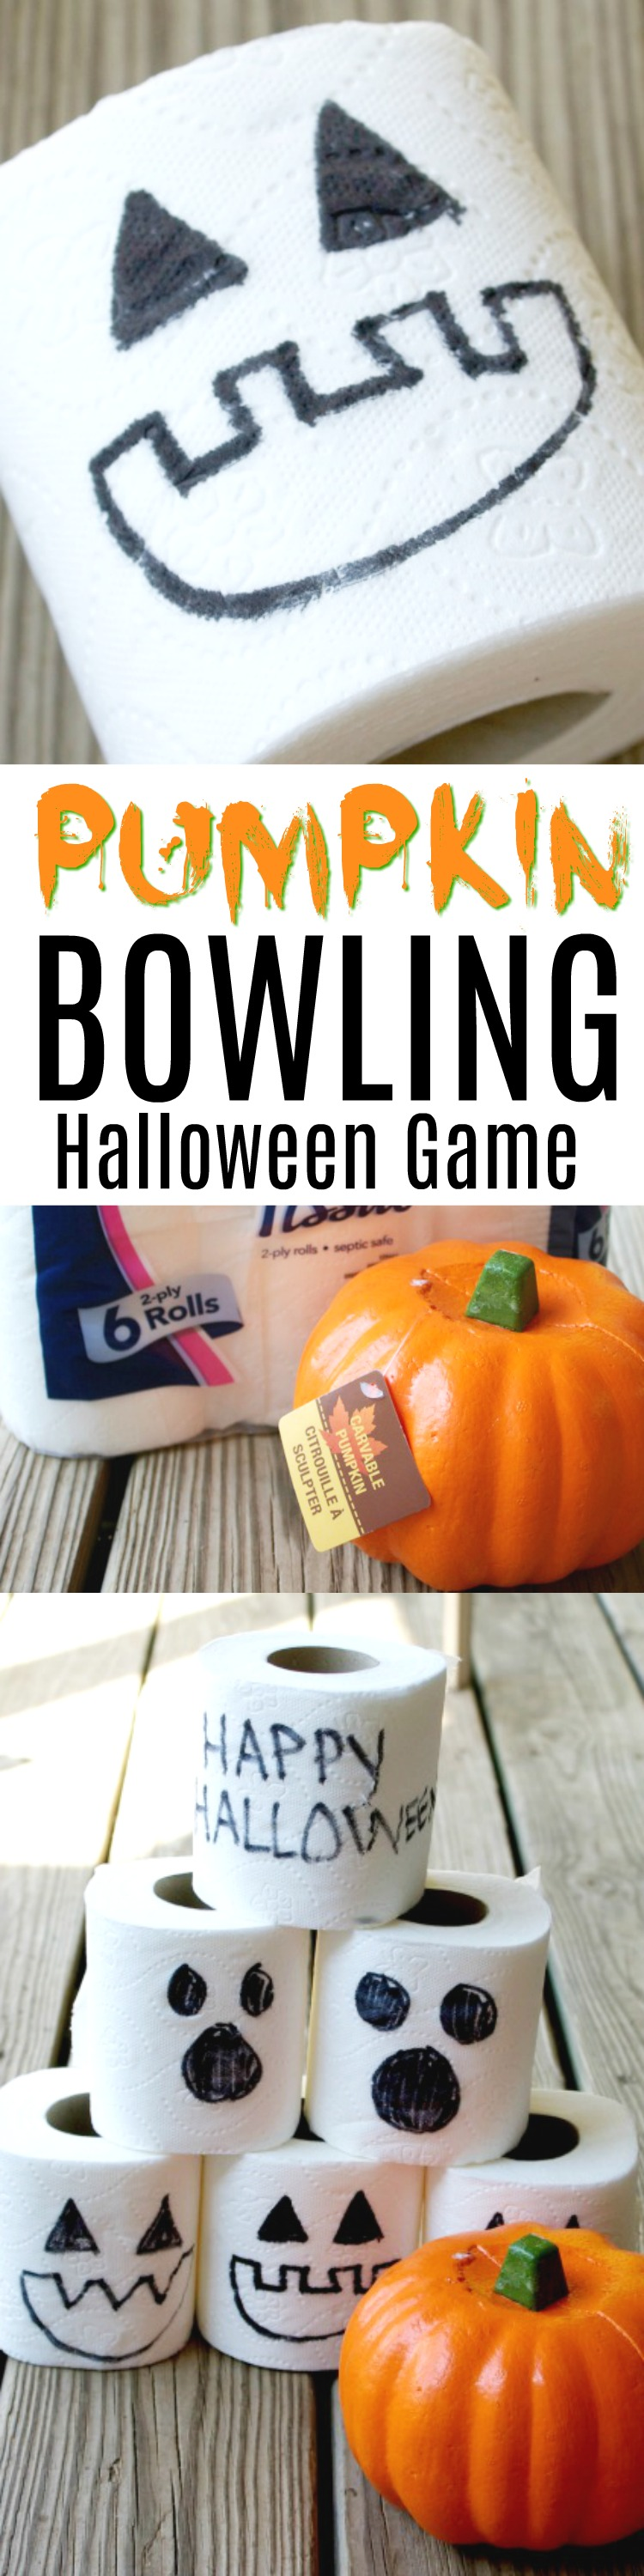 Pumpkin Bowling Halloween Game. This super easy game for Halloween is very inexpensive and a great last minute game idea for kids.